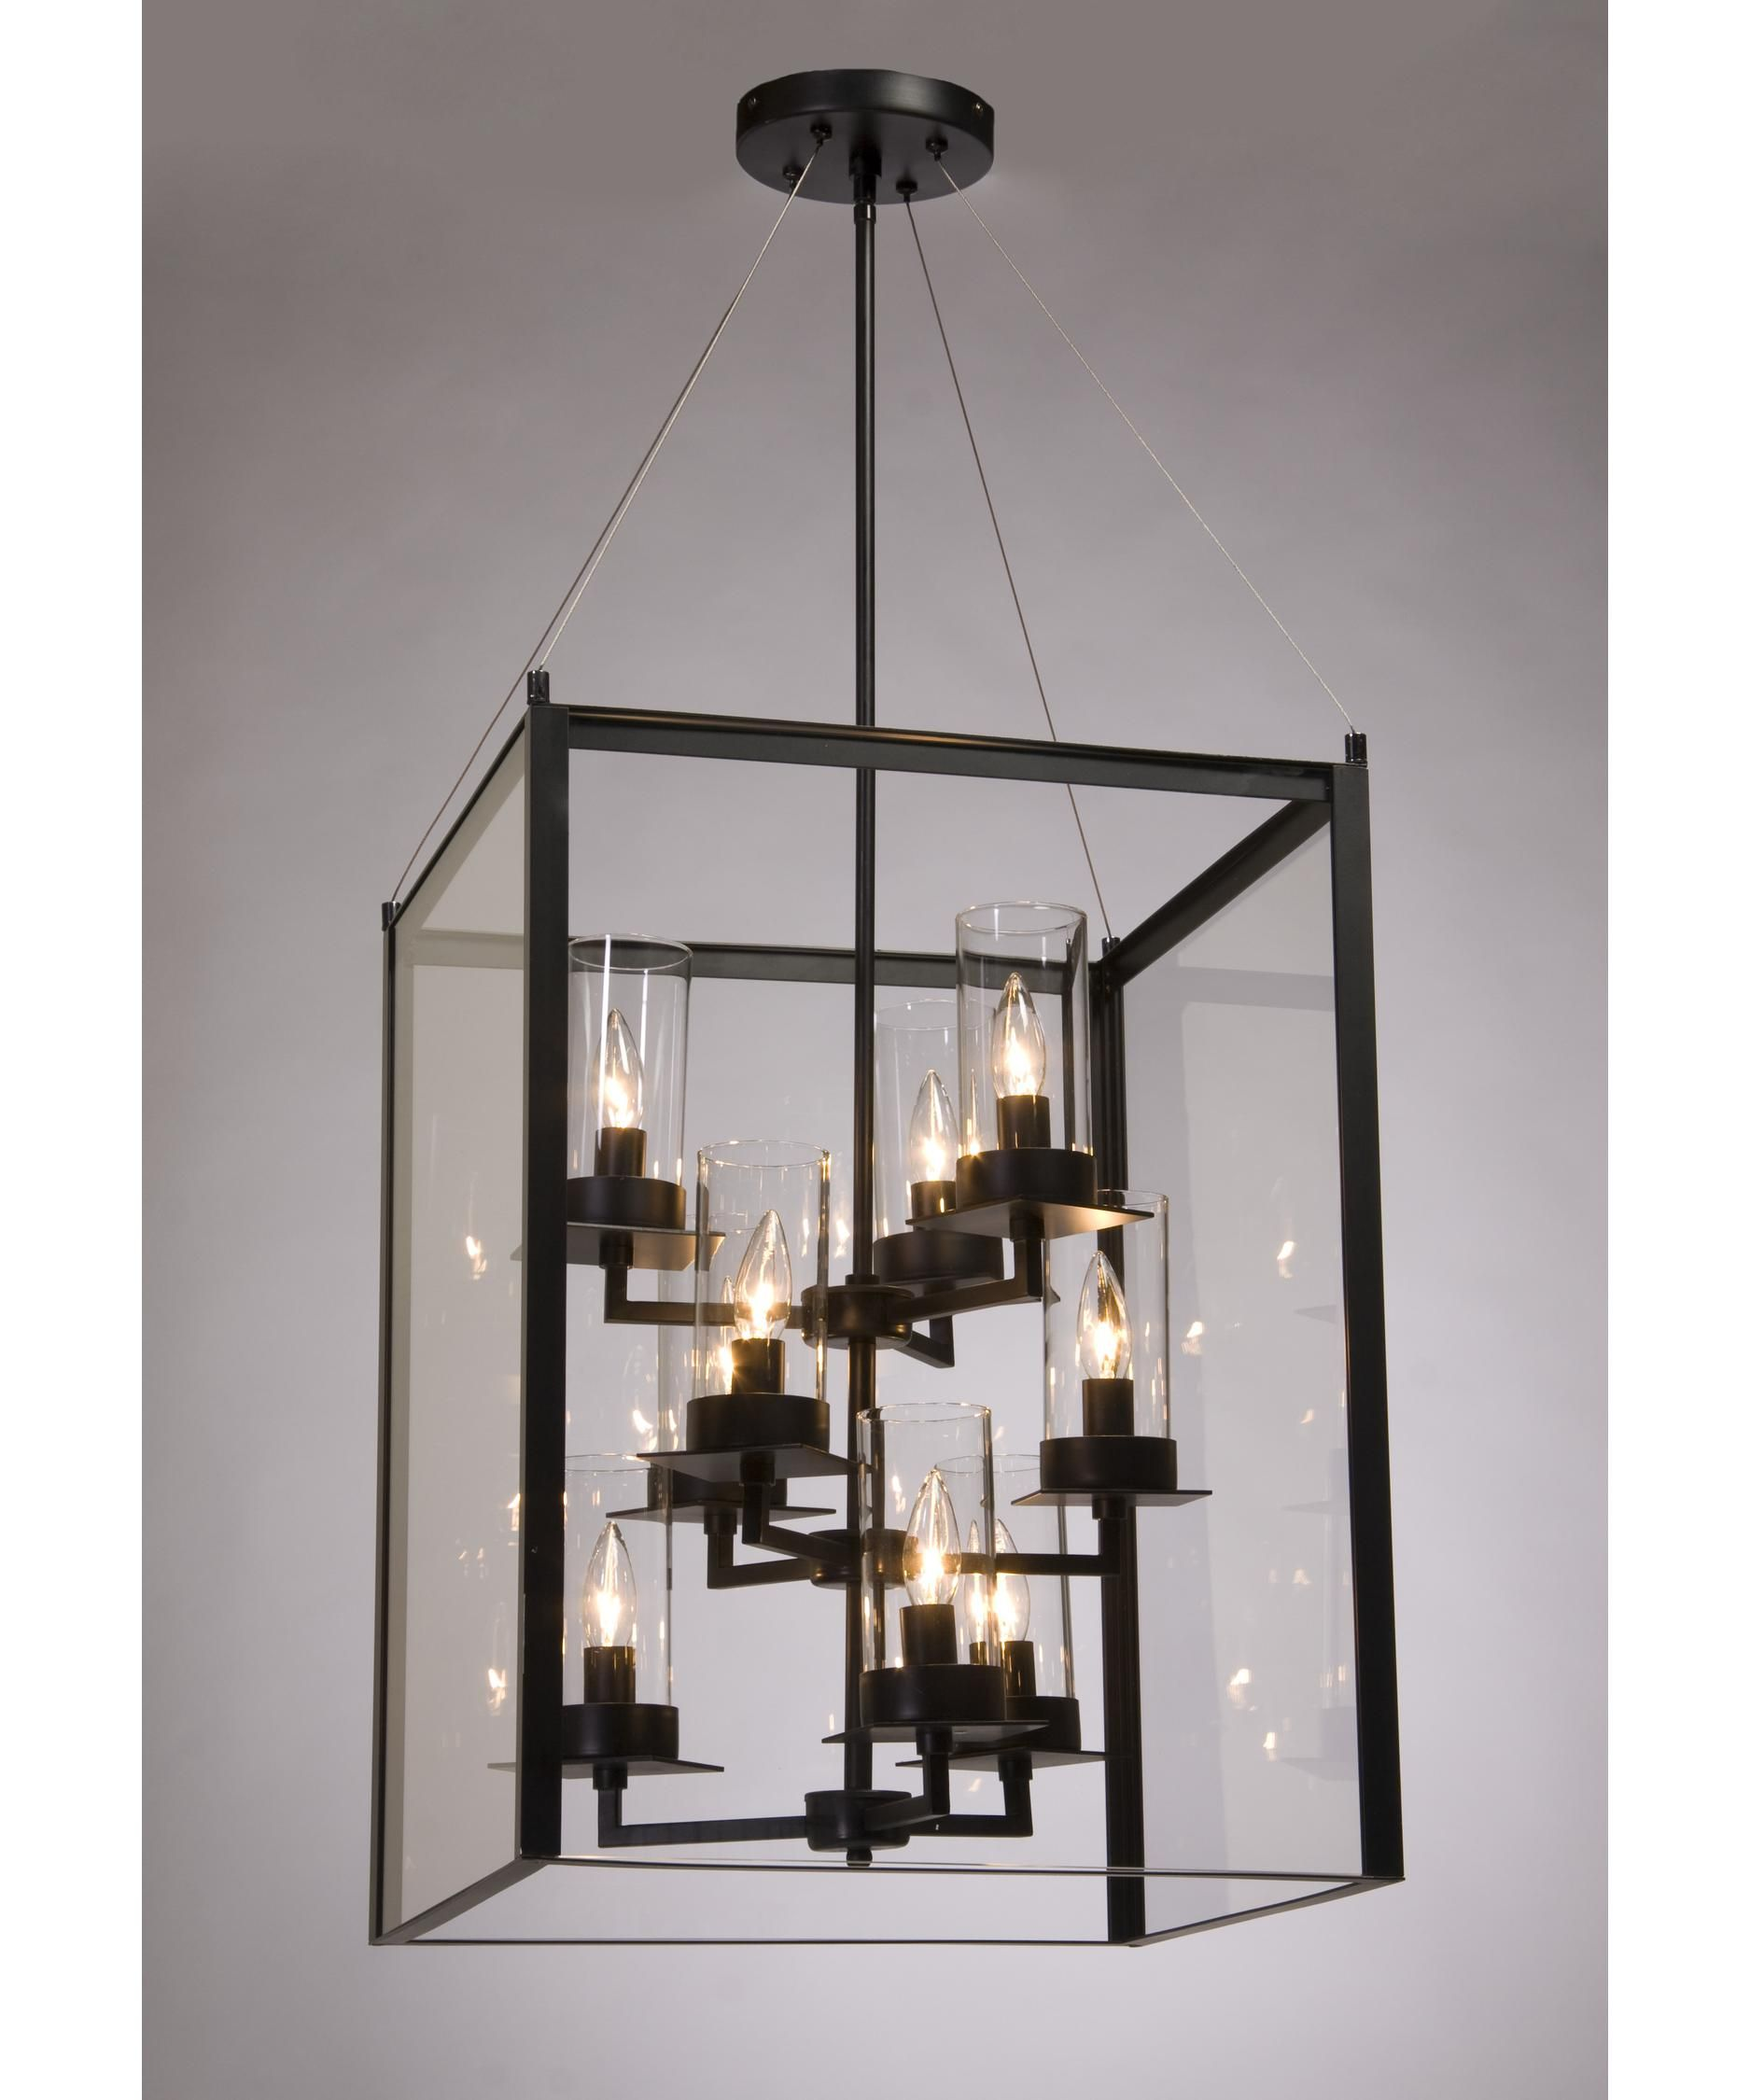 Steven and chris crawford 19 inch foyer pendant capitol lighting 1 steven and chris crawford 19 inch foyer pendant capitol lighting 1 800lighting aloadofball Gallery